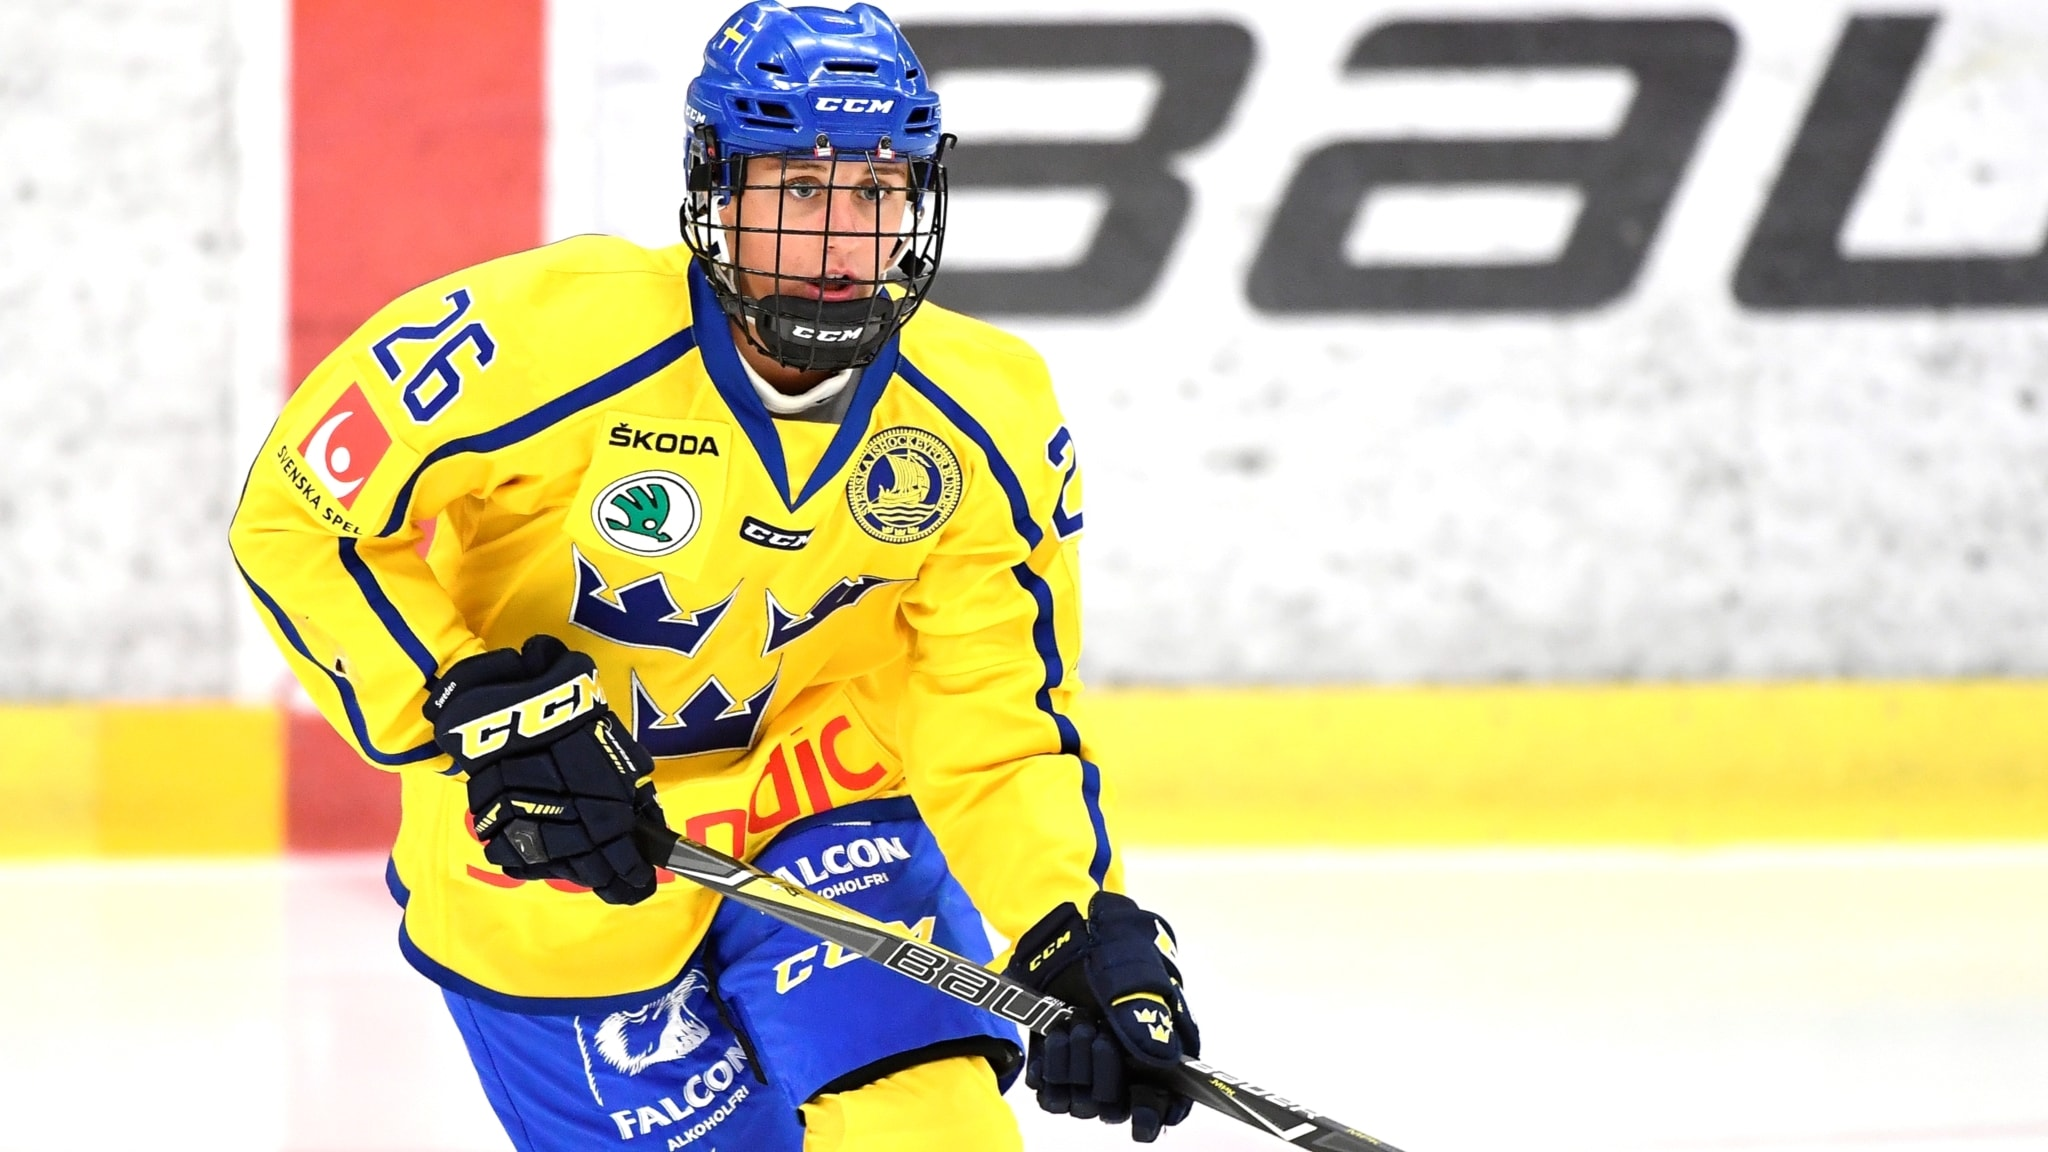 Forsta segern for martinsens damkronor